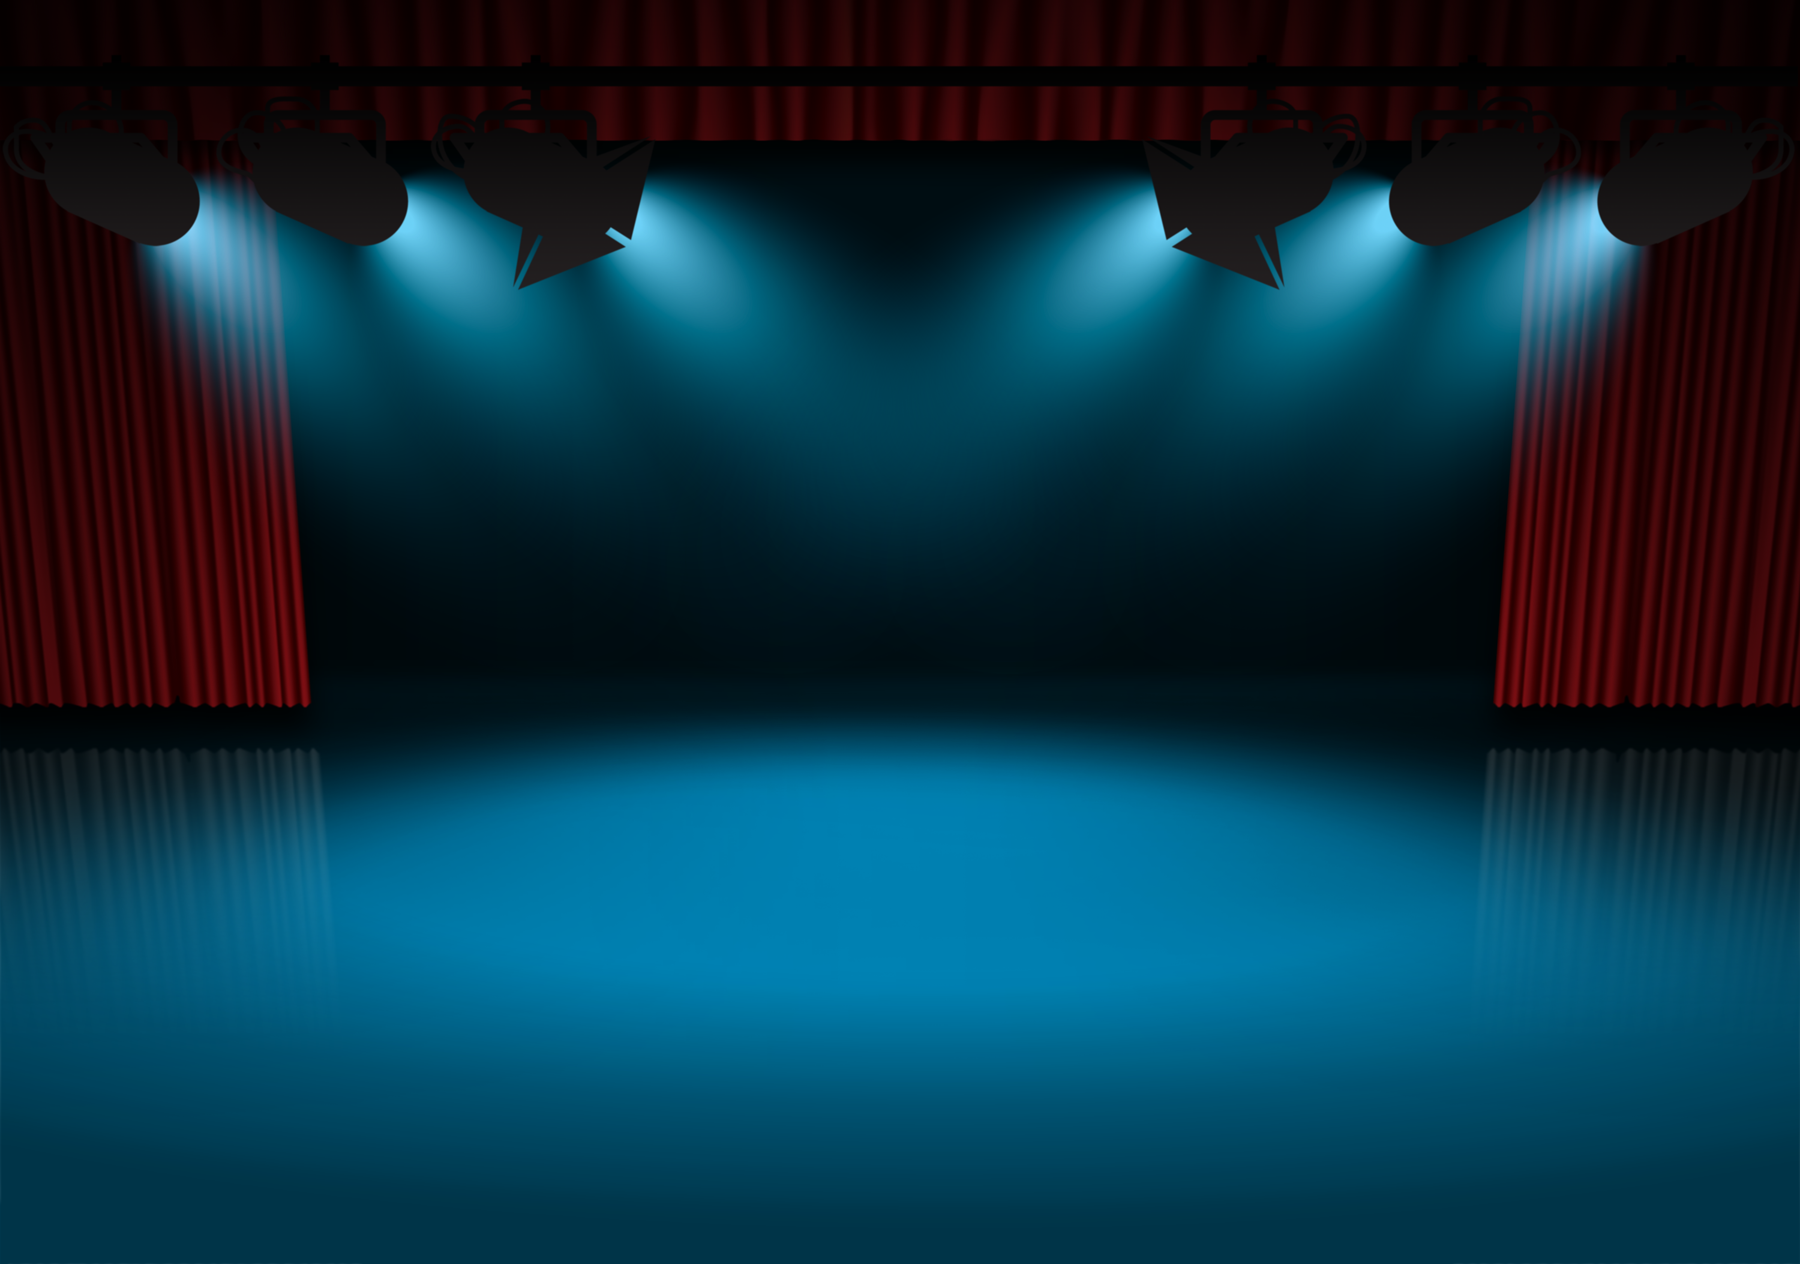 stage lighting wallpaper - photo #1